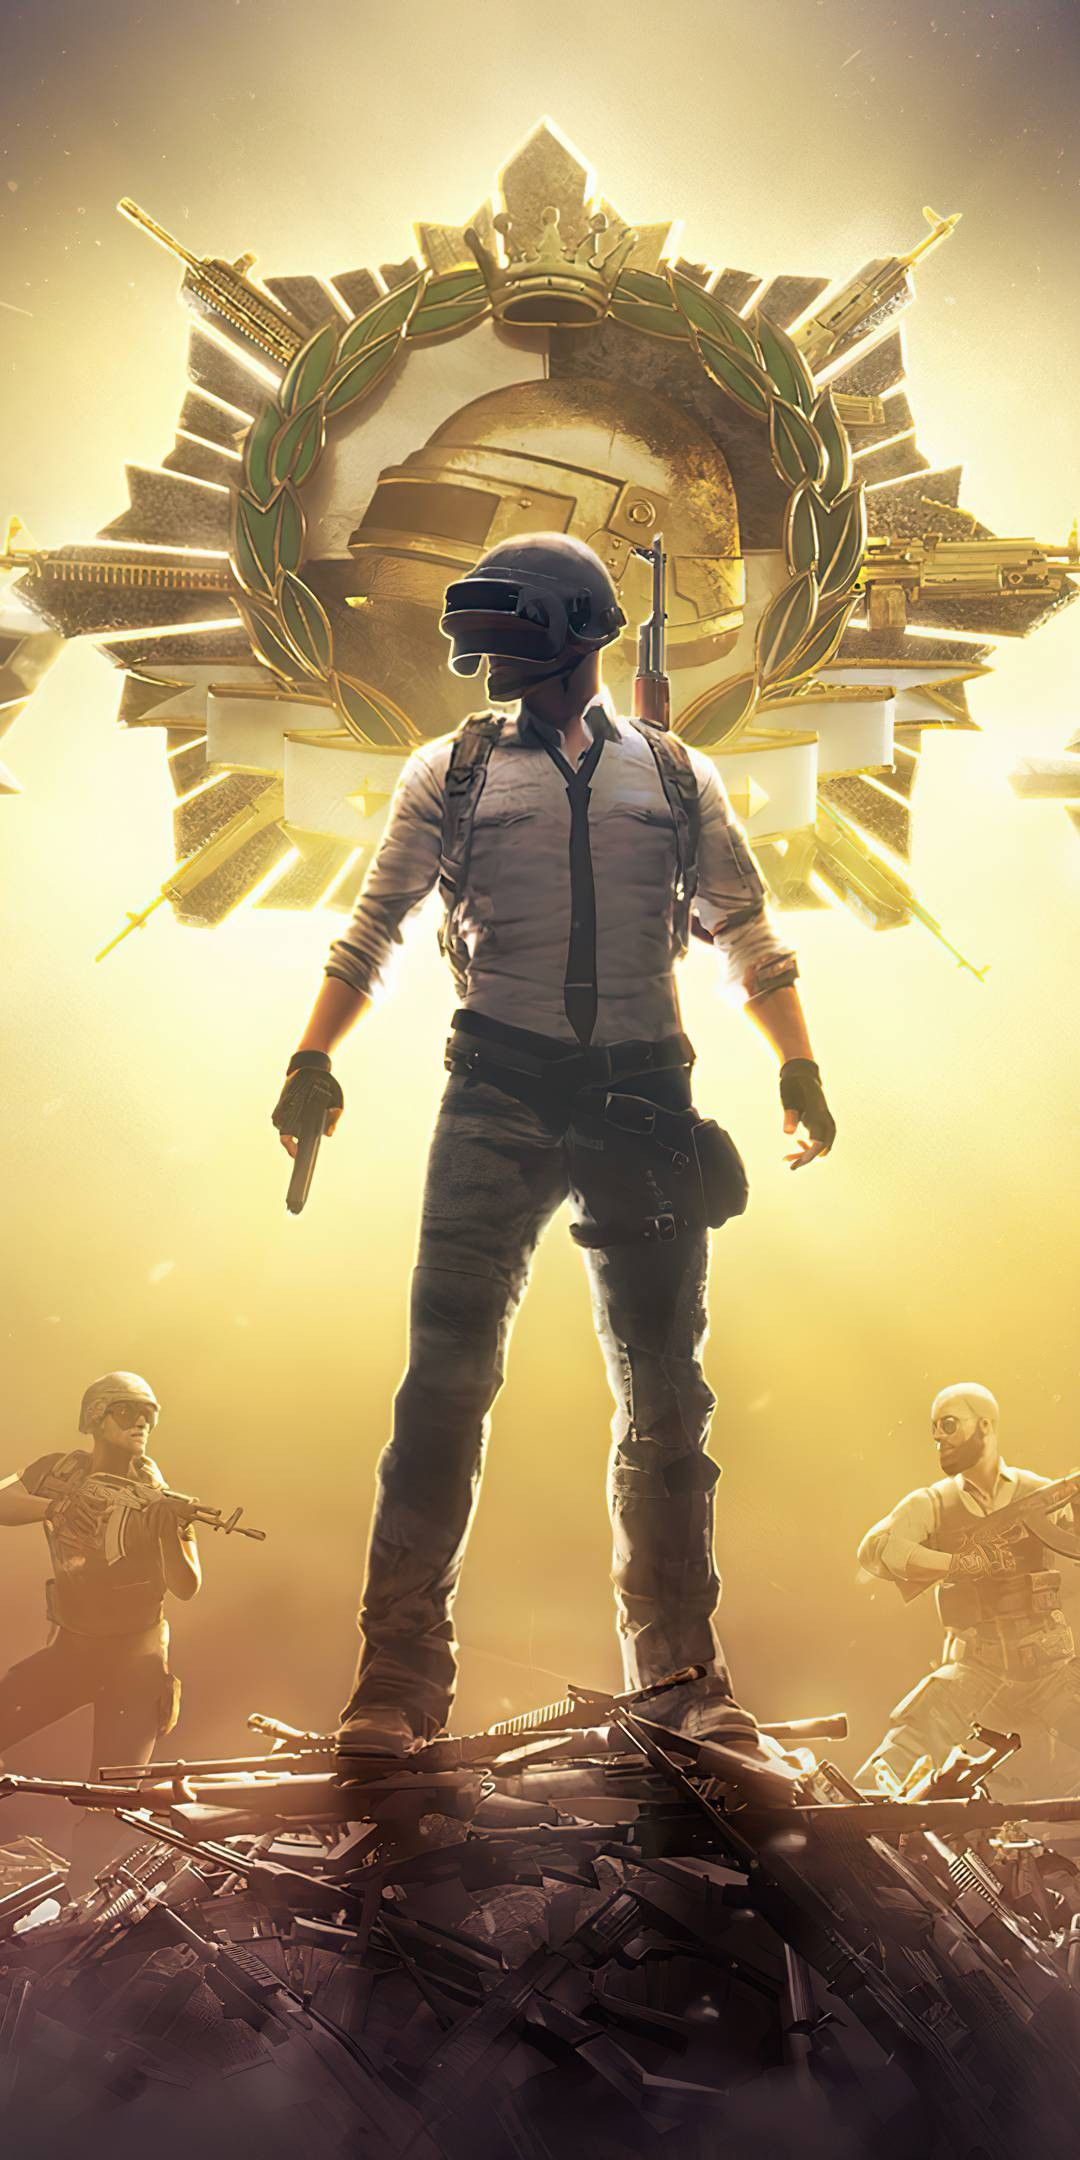 Cool Pubg Wallpapers Gaming Wallpapers Hd Gaming Wallpapers Game Wallpaper Iphone